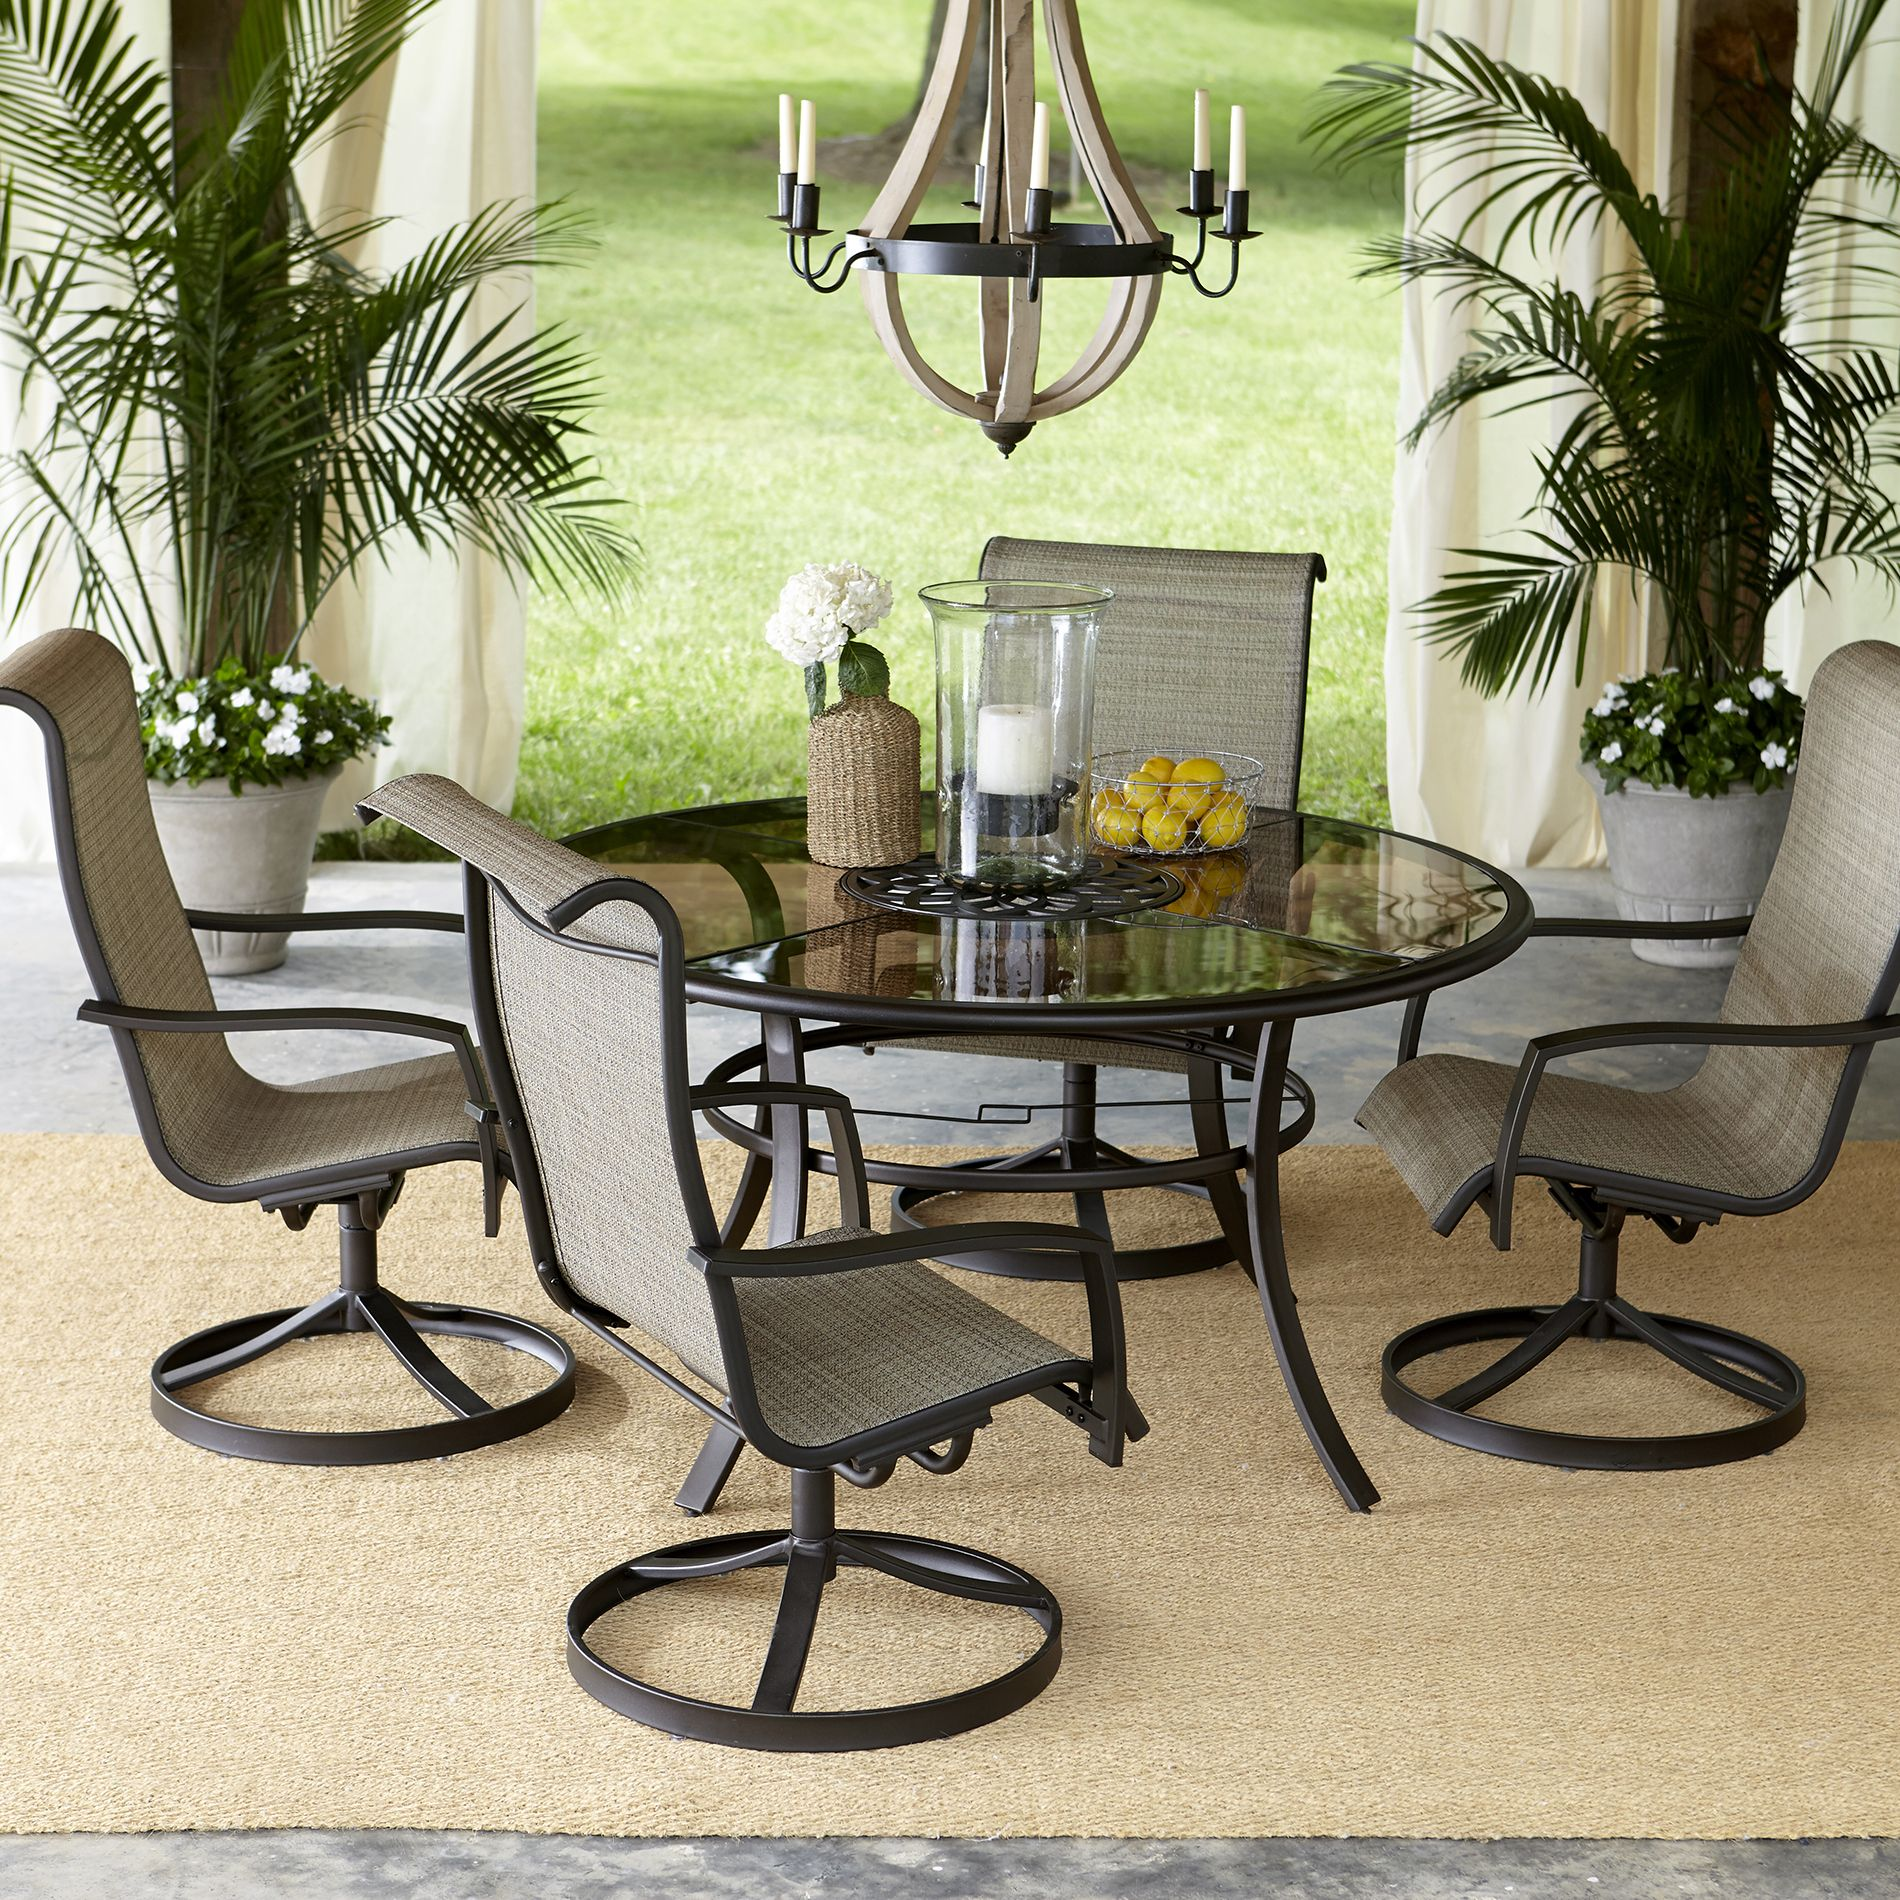 Enjoy Elegant Outdoor Dining With The Garden Oasis Providence Swivel Dining  Set In Tan